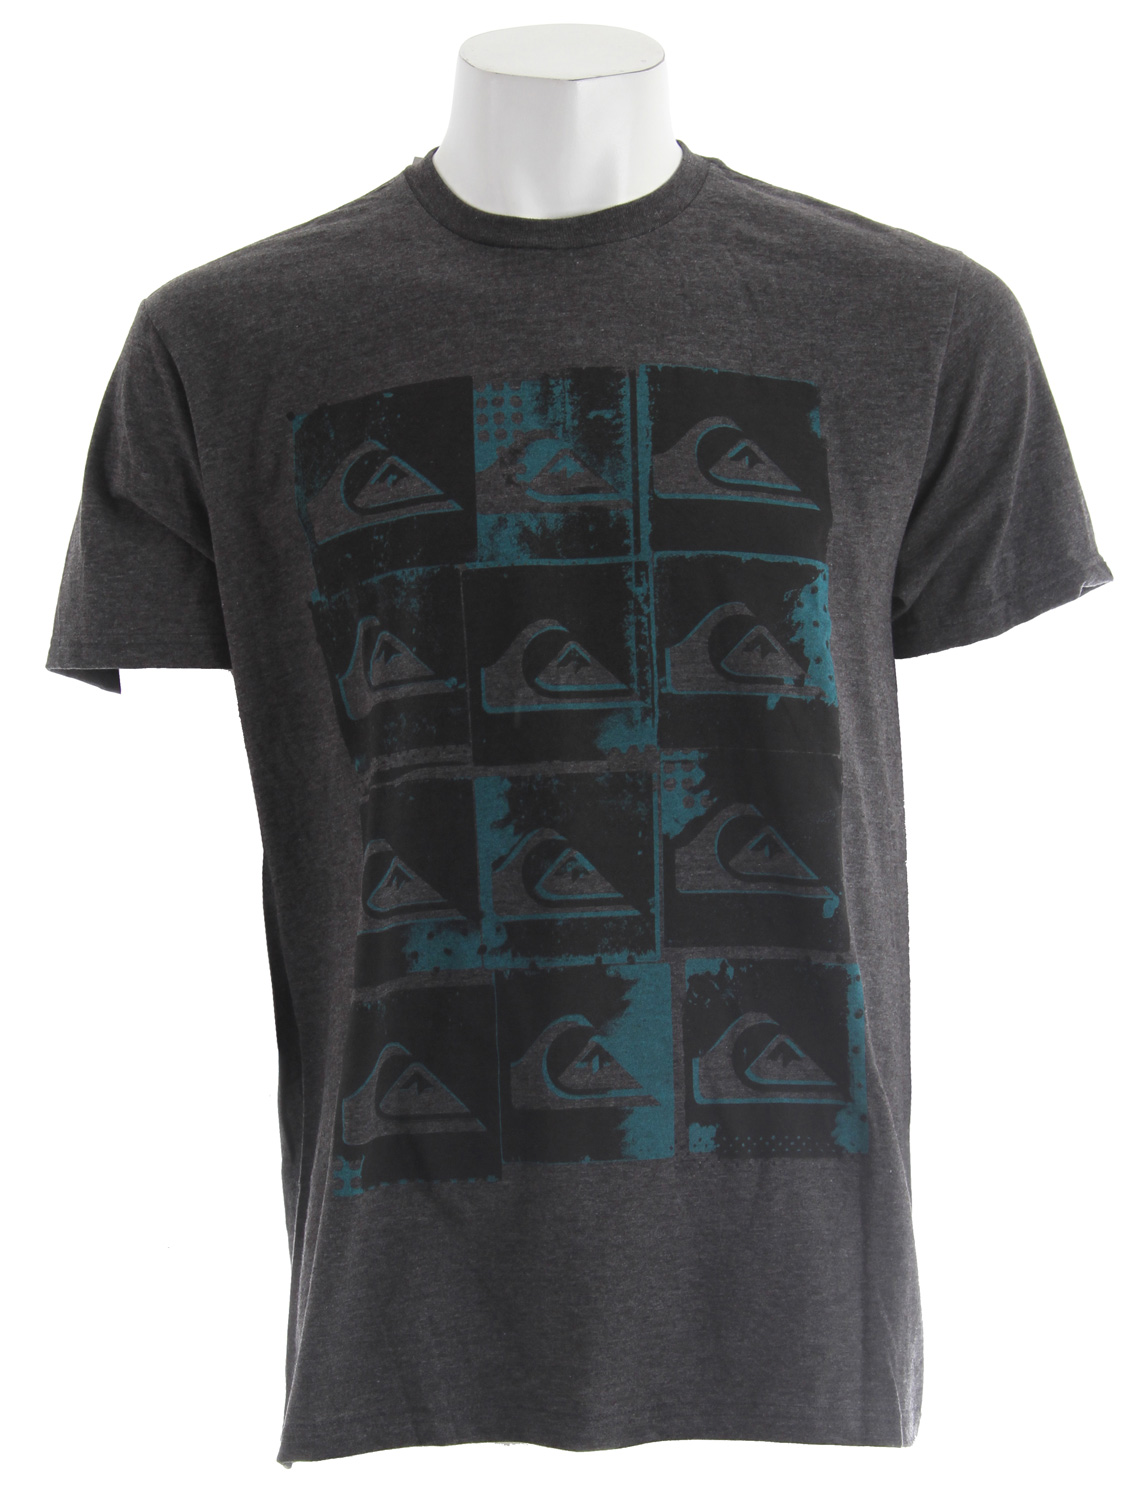 Surf Key Features of The Quiksilver Pop Irritation T-Shirt: Regular Fit Crew Neck Short Sleeve Solids: 100% Cotton Heathers: 50% Cotton, 50% Polyester Woven neck label - $19.95